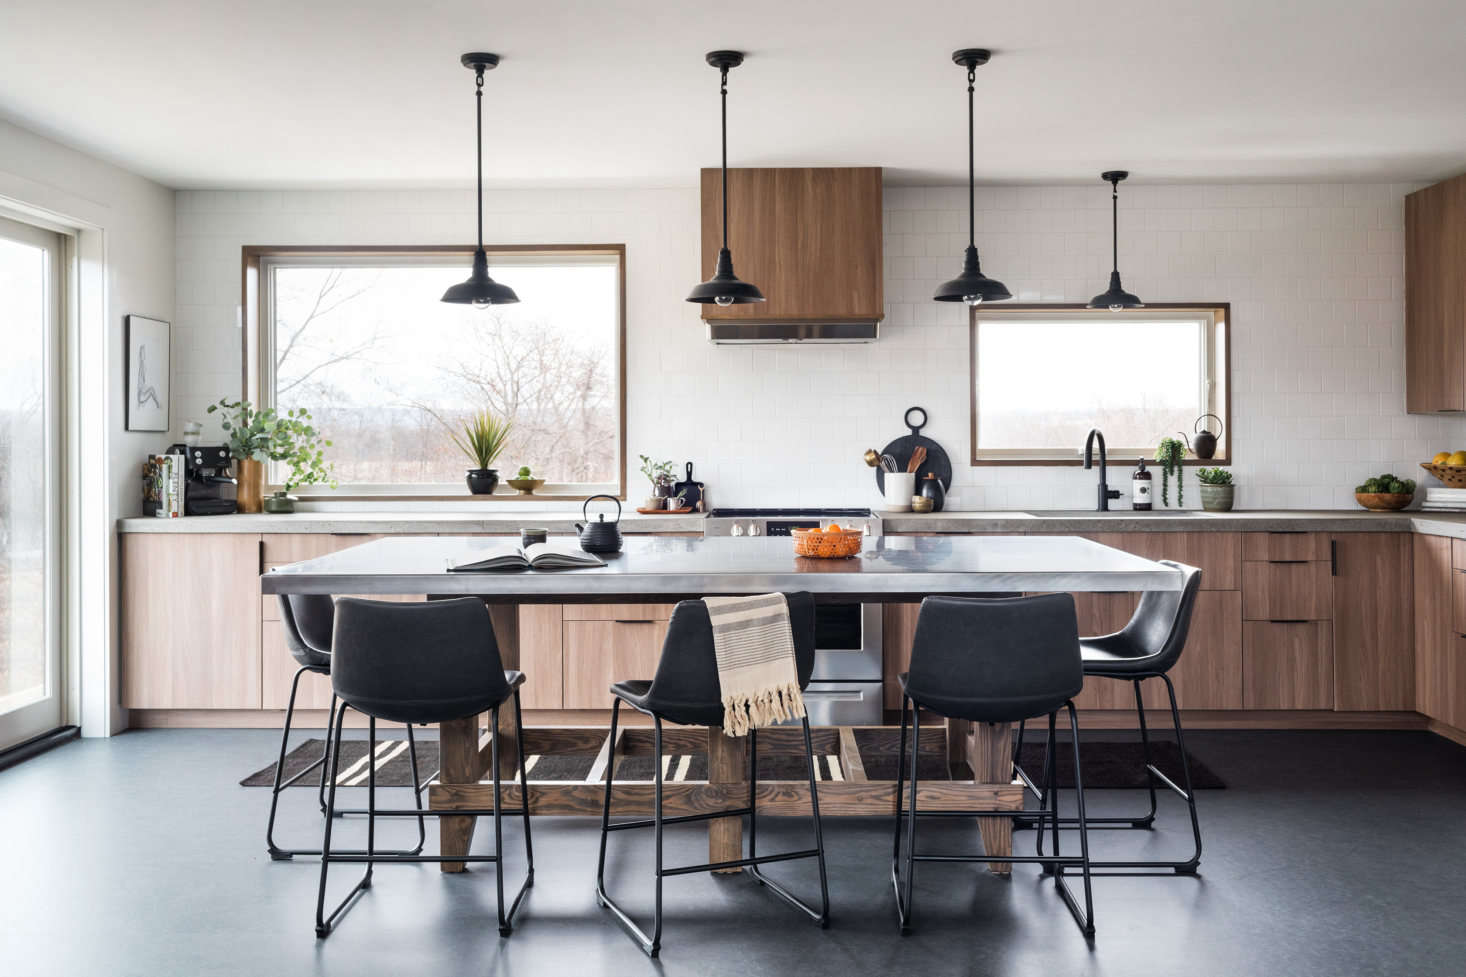 Kitchen of the Week: An Eco-Friendly, Elevated Ikea Kitchen in a Family's Forever Home